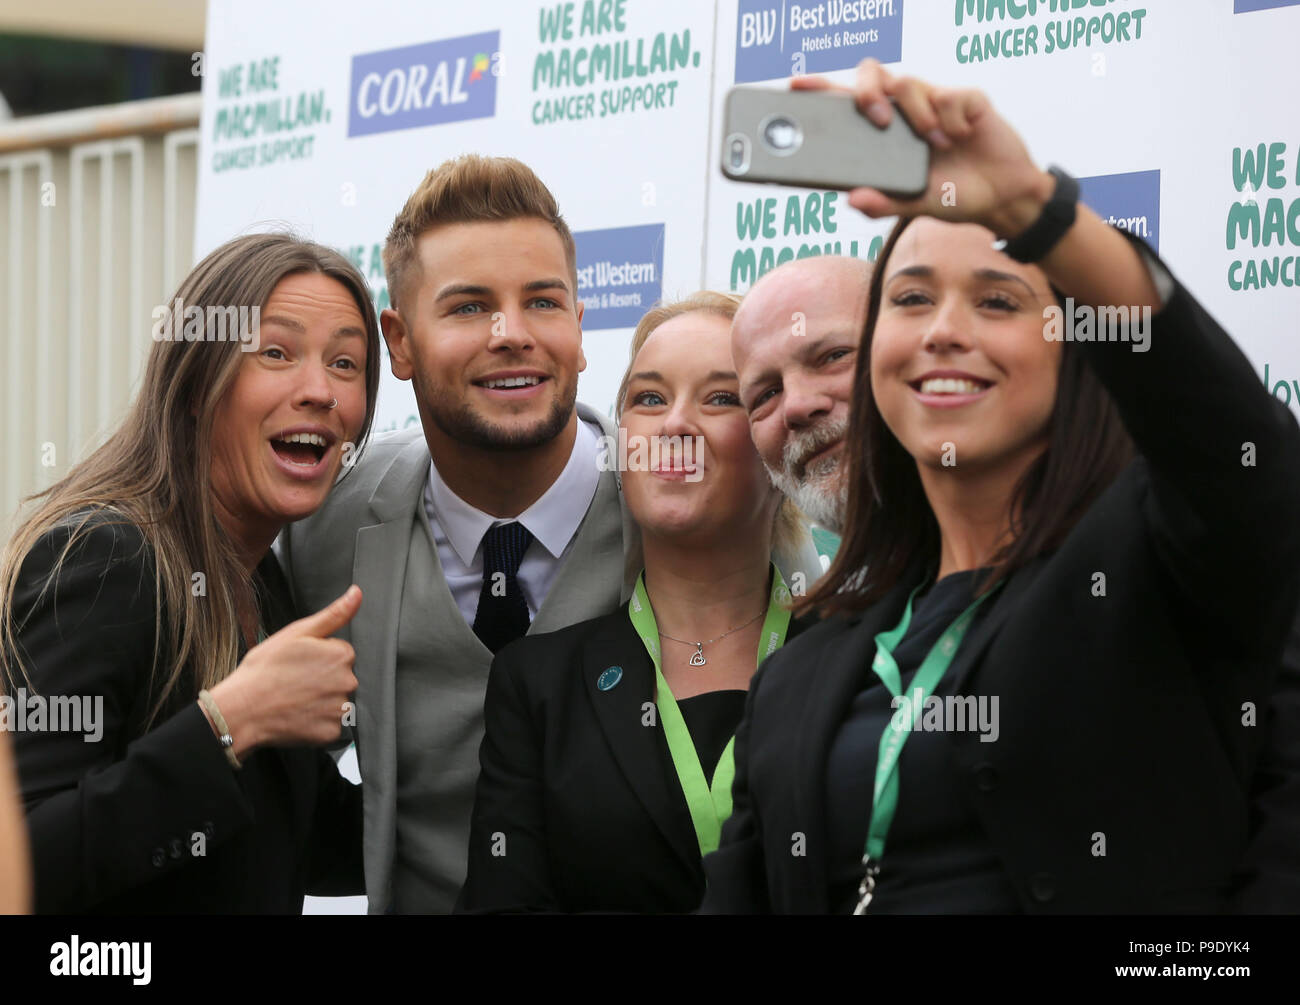 f1ad150042 LOVE ISLAND'S CHRIS HUGHES 3-1 FAVOURITE TO WIN HORSE RACE The former Love  Island star is well-known as a horse-racing fan and has swapped the ...